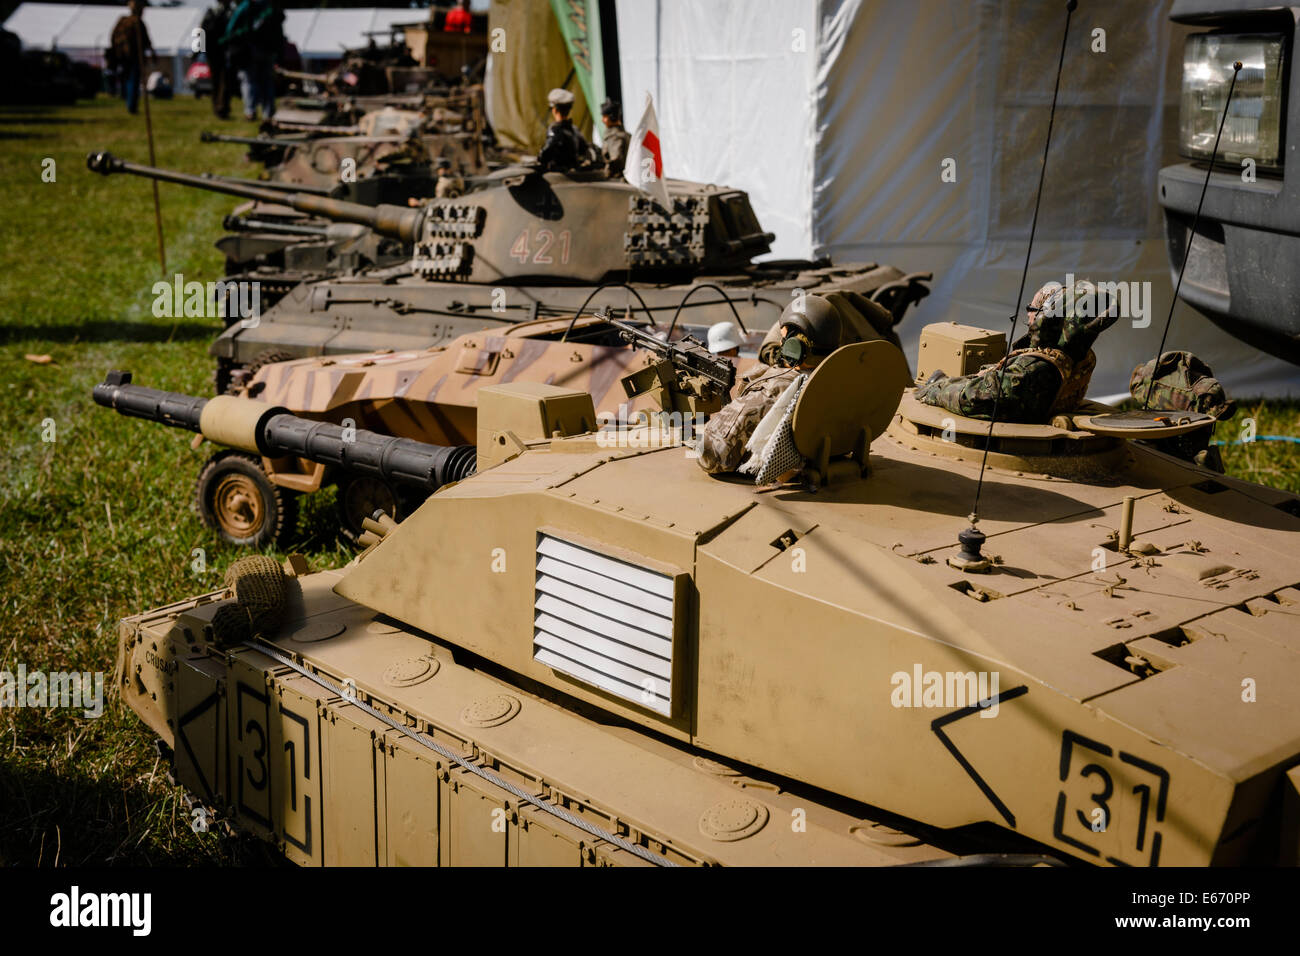 Kent, UK  16th Aug, 2014  Miniature Tanks and soldiers on